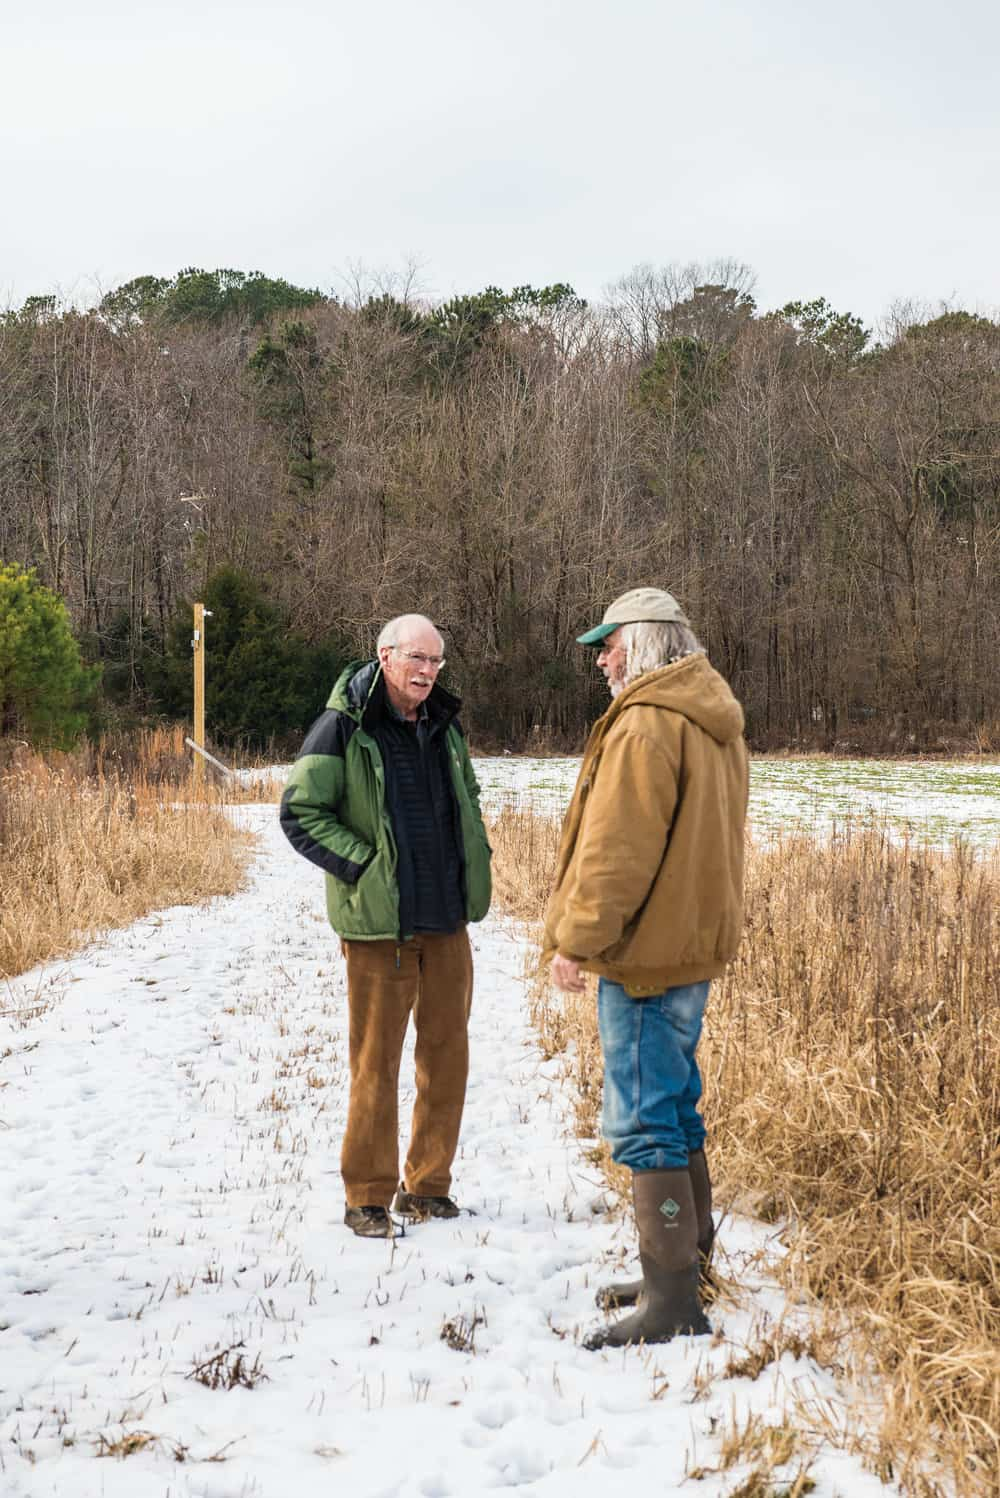 Gerber (right) talks with Stanley Watkins, a CWH board member.